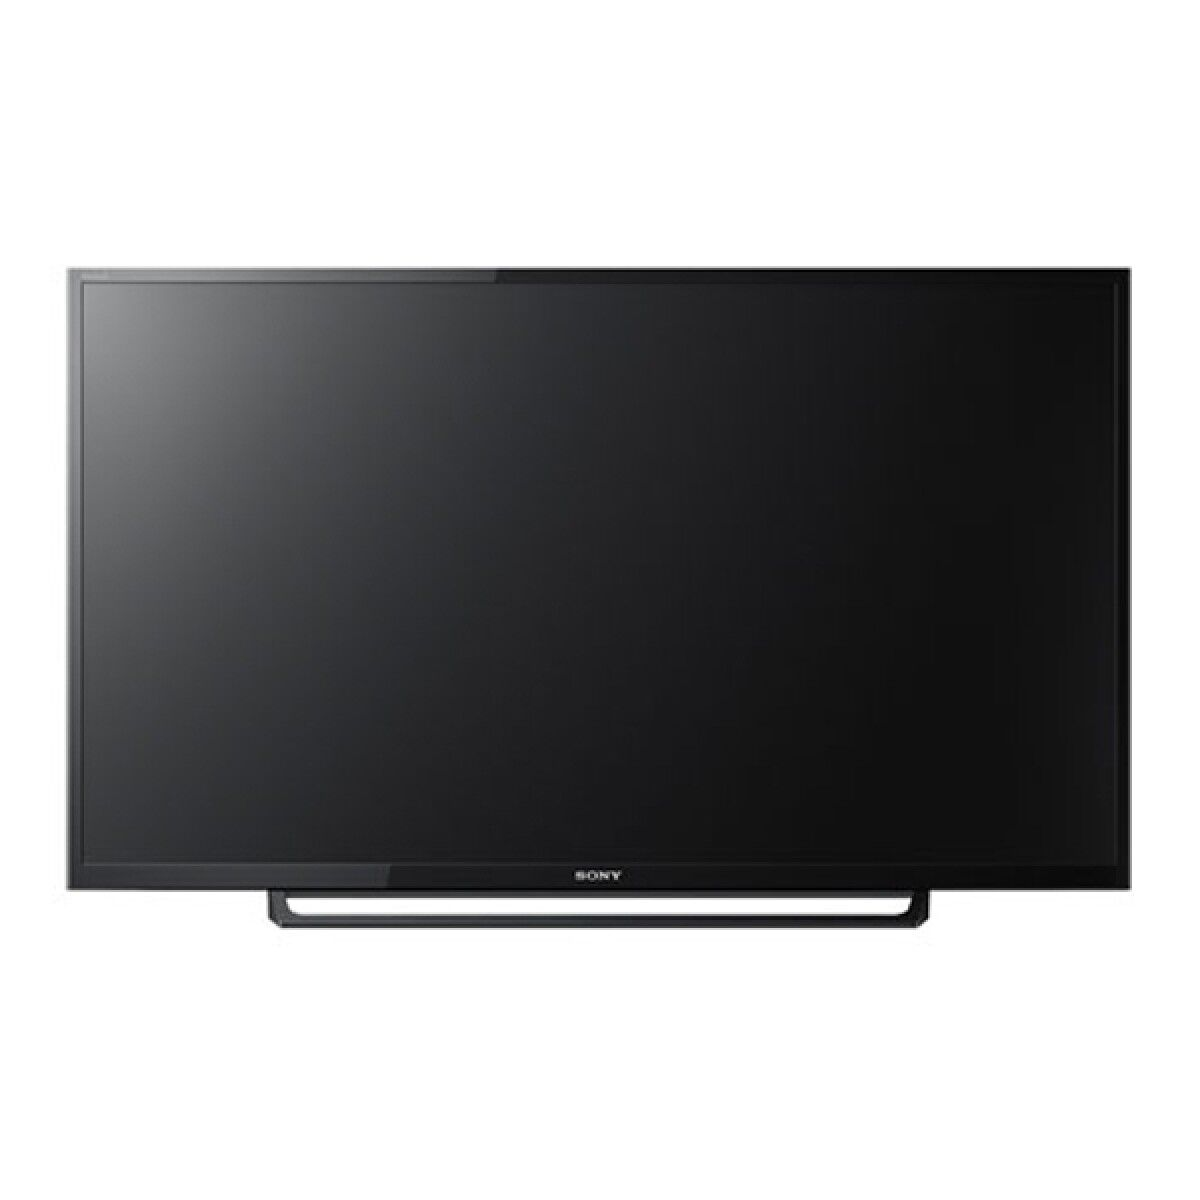 "Sony 40"" FHD LED TV (KLV-40R352E)"